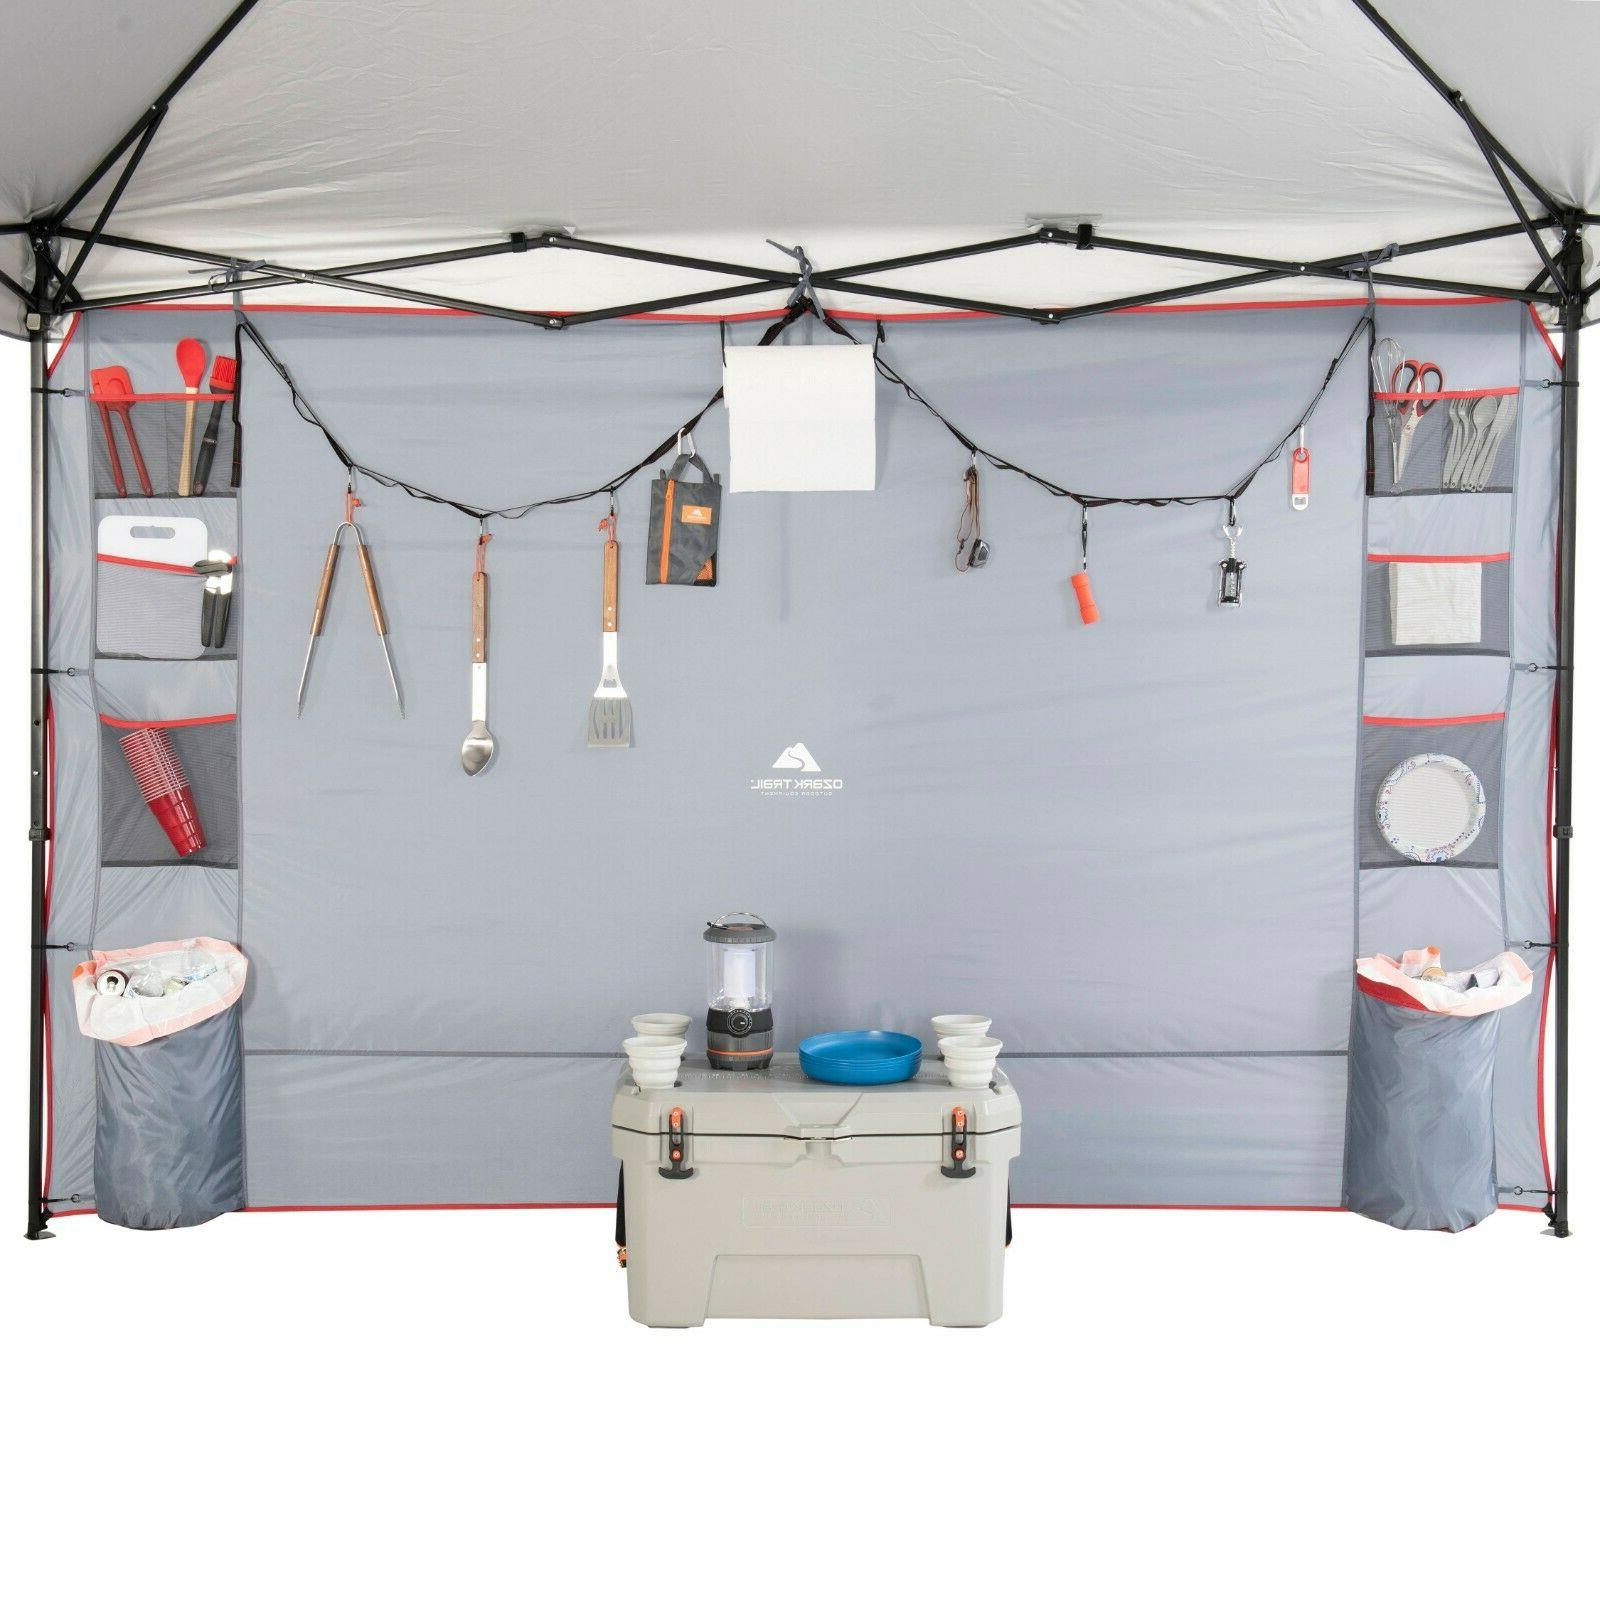 shade wall with organizer pockets for straight